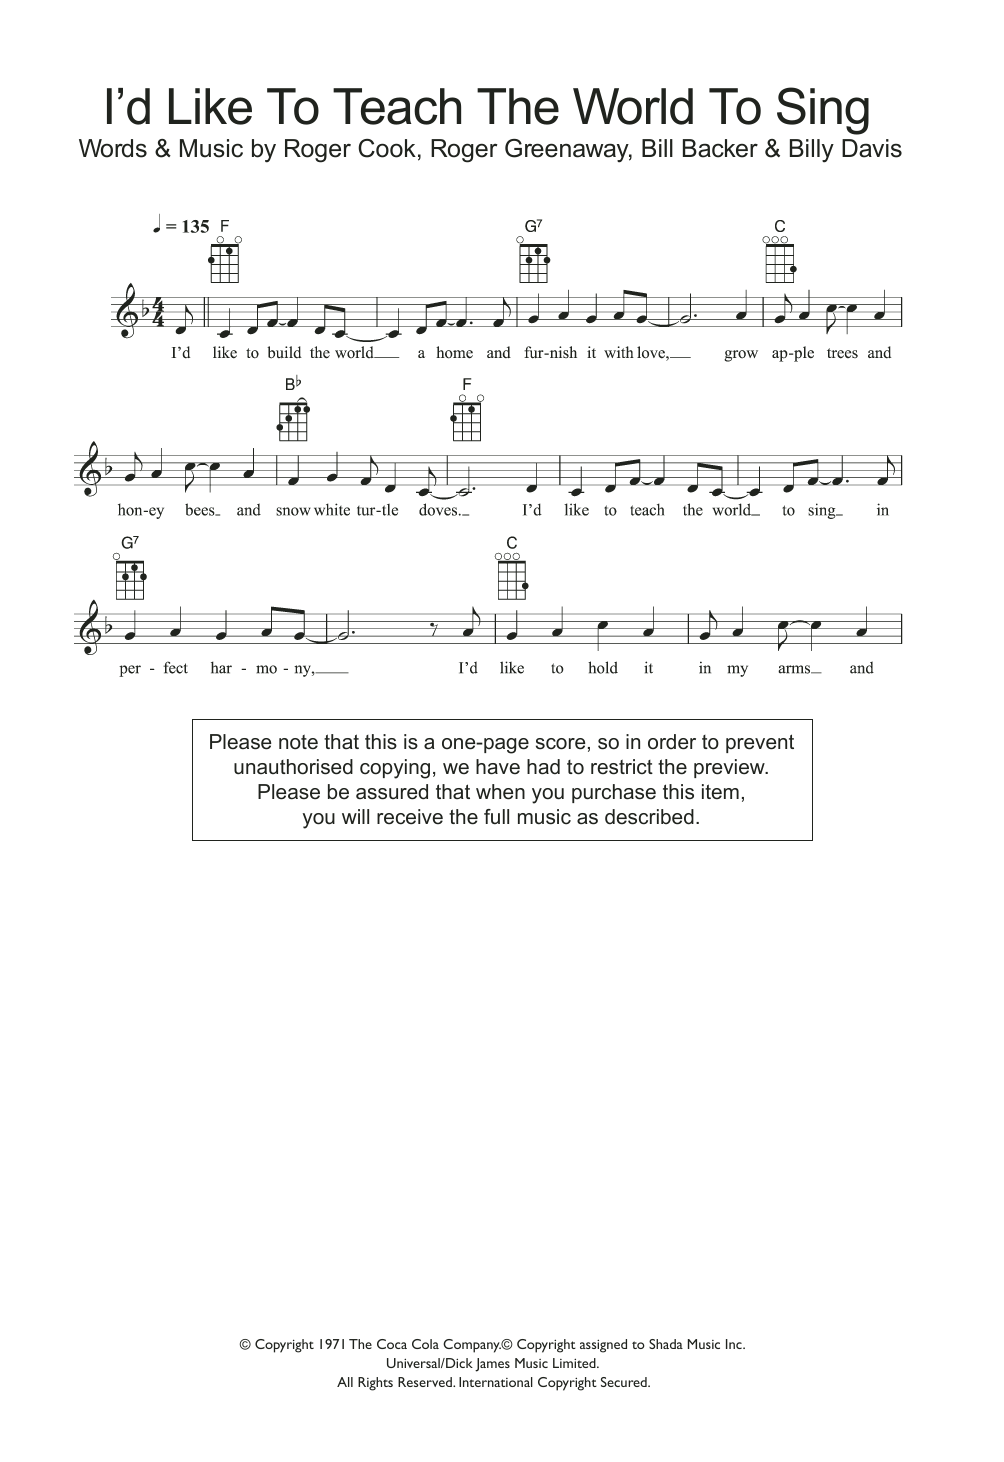 I'd Like To Teach The World To Sing Sheet Music